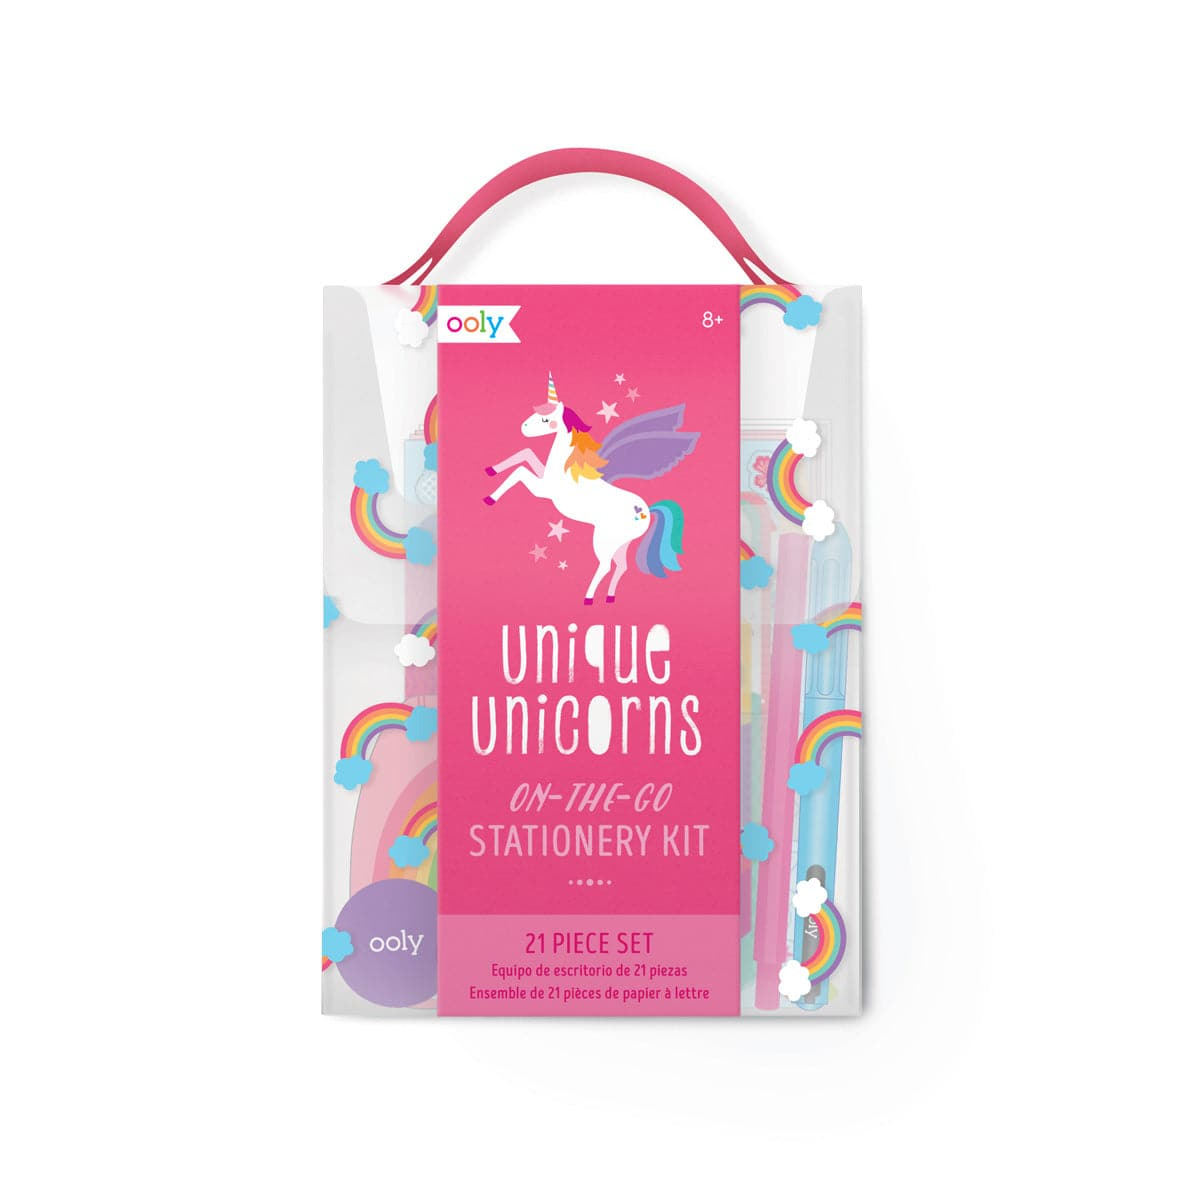 On-The-Go Stationery Kit - Unique Unicorns 21 Piece Set